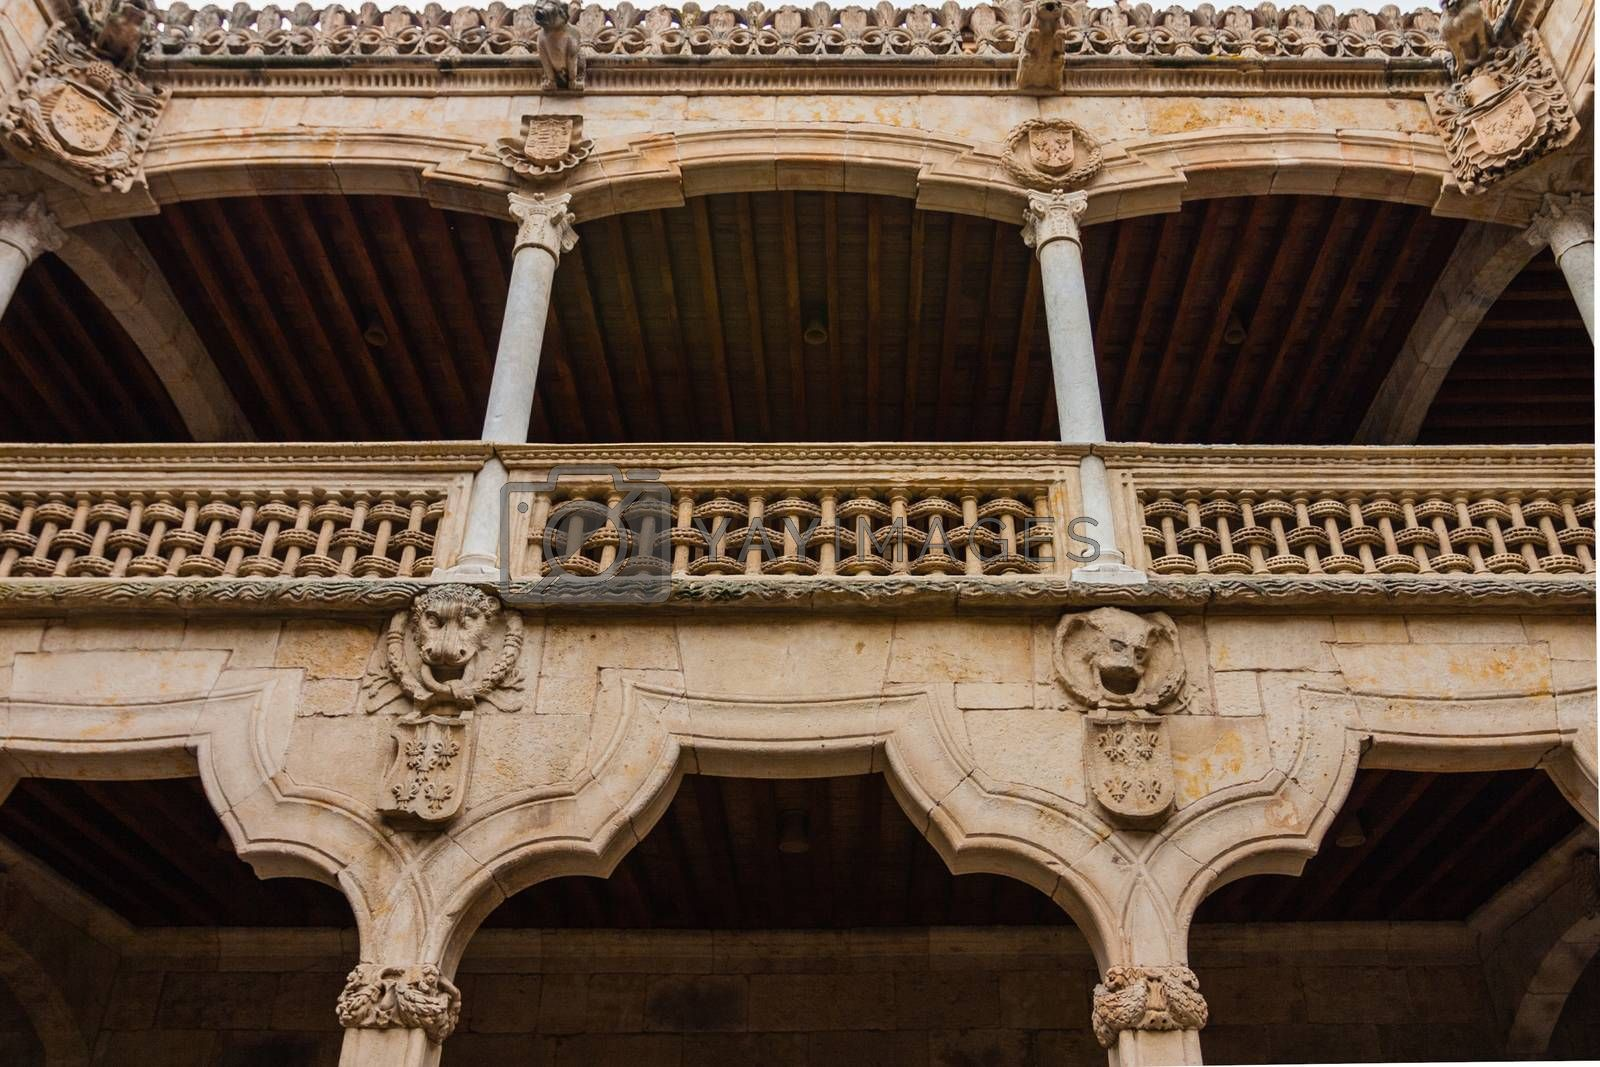 View of beautiful balcony in the House of Shells courtyard Salam by imagsan